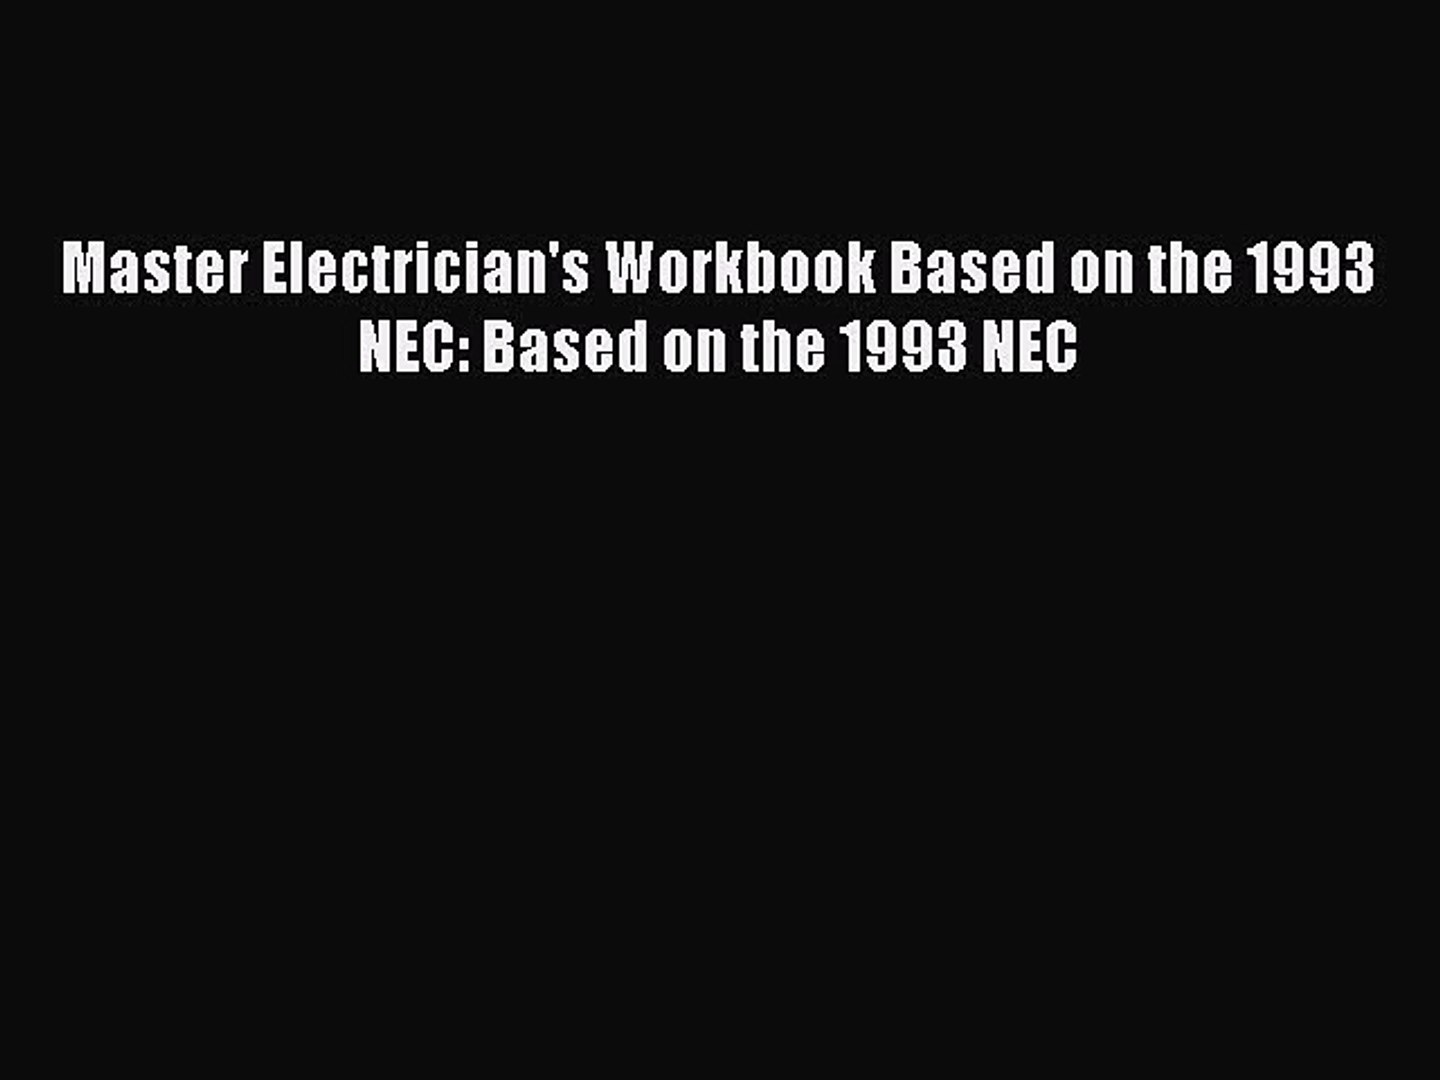 [PDF] Master Electrician's Workbook Based on the 1993 NEC: Based on the 1993 NEC# [Read] Online